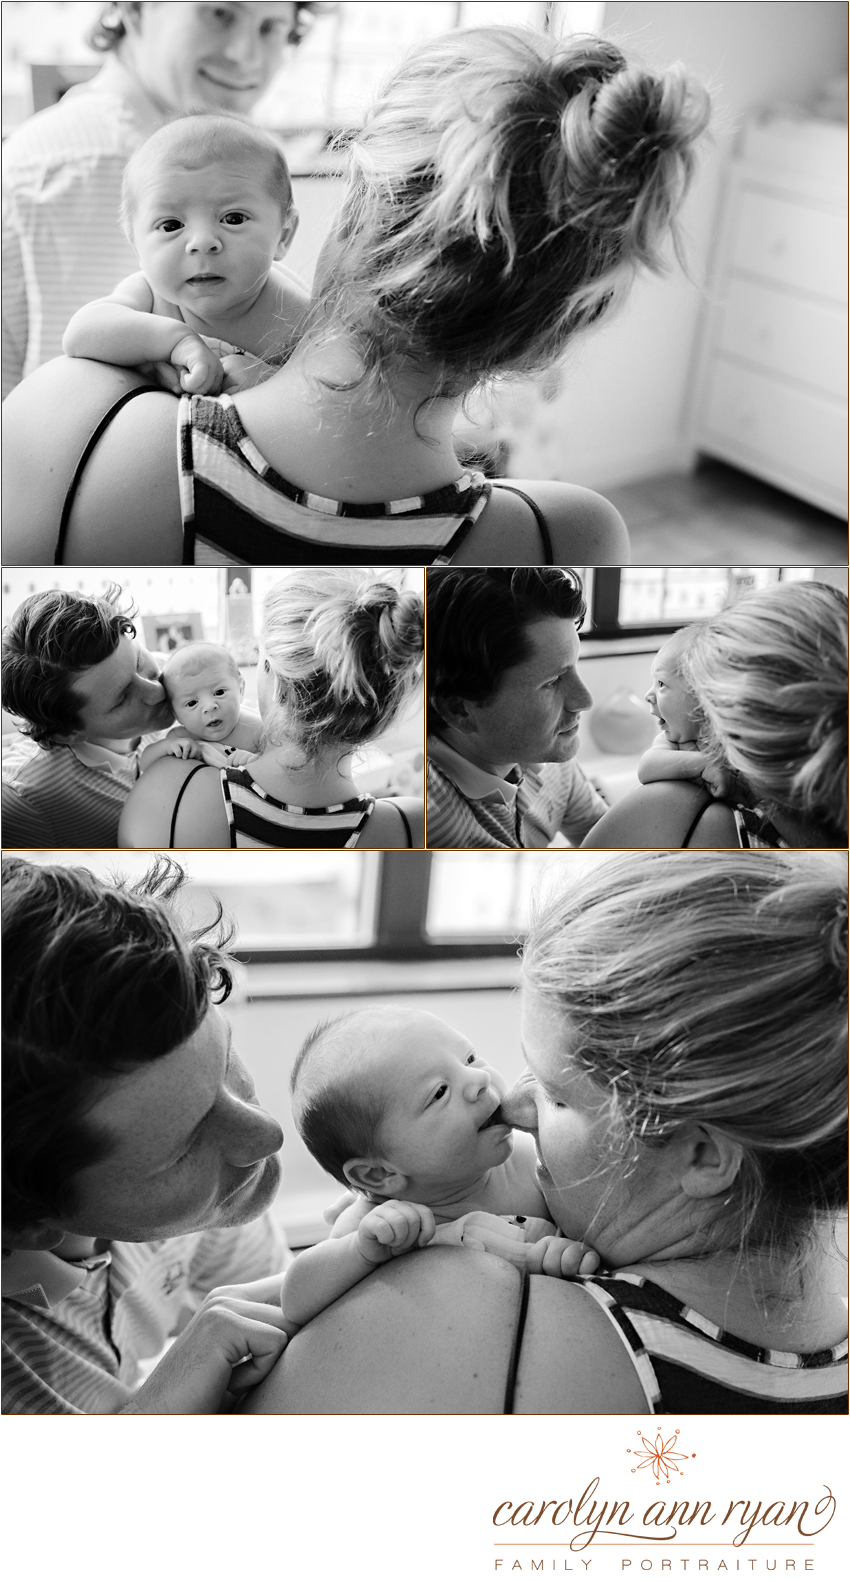 Charlotte Metro Area Baby Photographer, Carolyn Ann Ryan, captures special moments between Mom , Dad and baby.